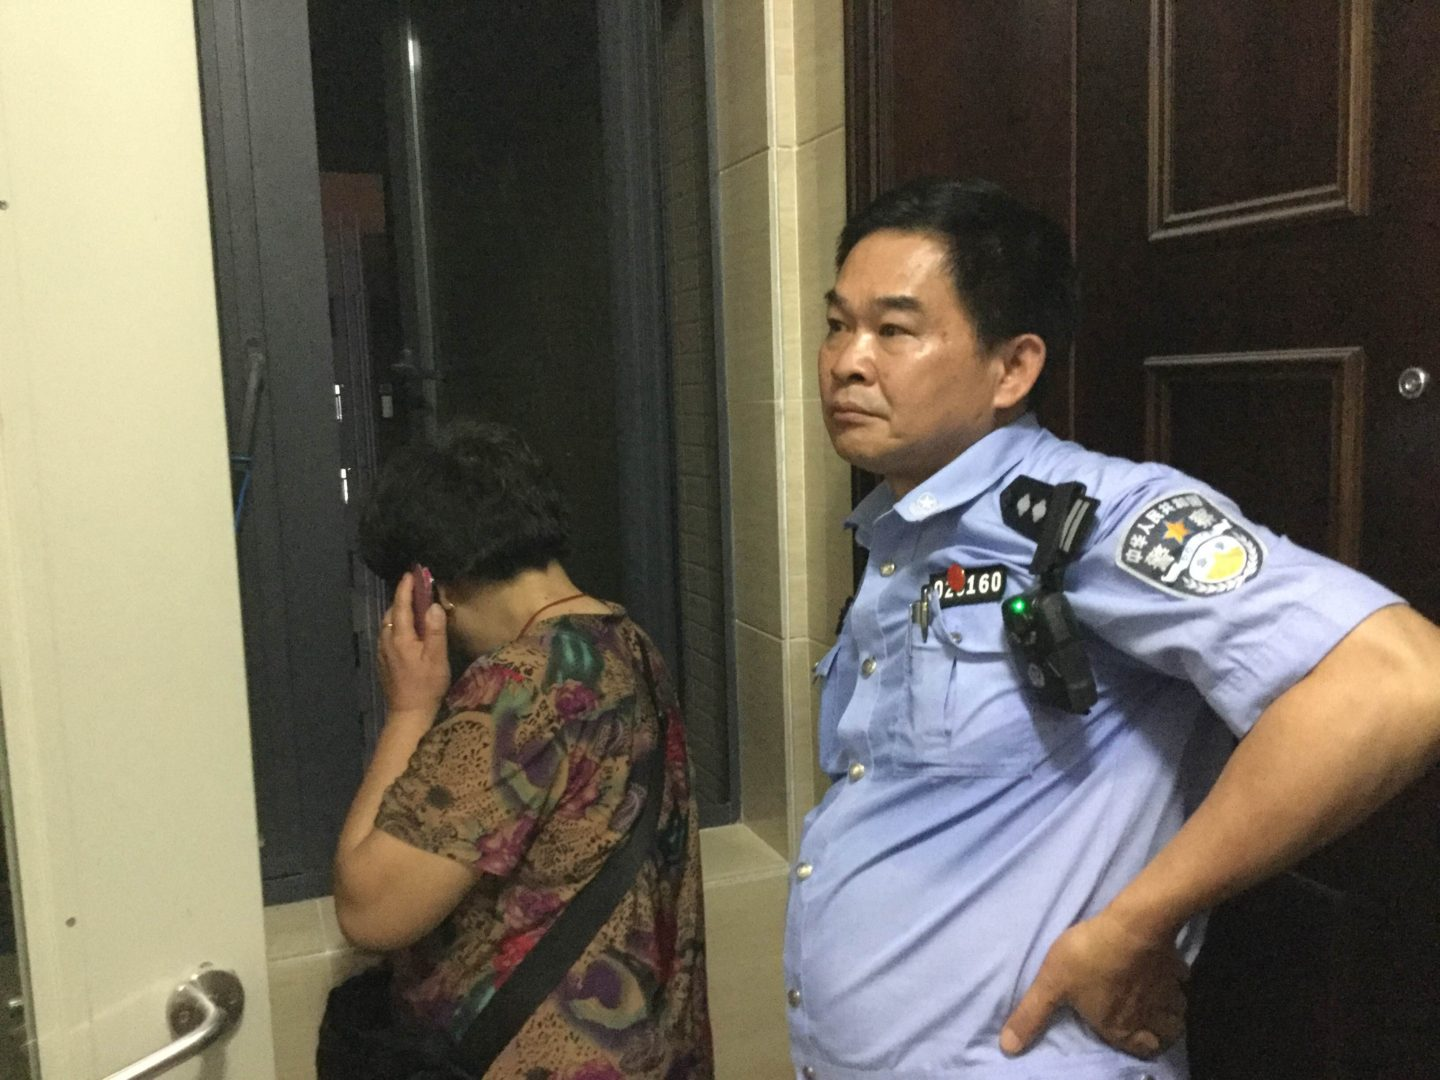 A policeman tasked with stalking Wang Zhiwen. (Courtesy of Danielle Wang)